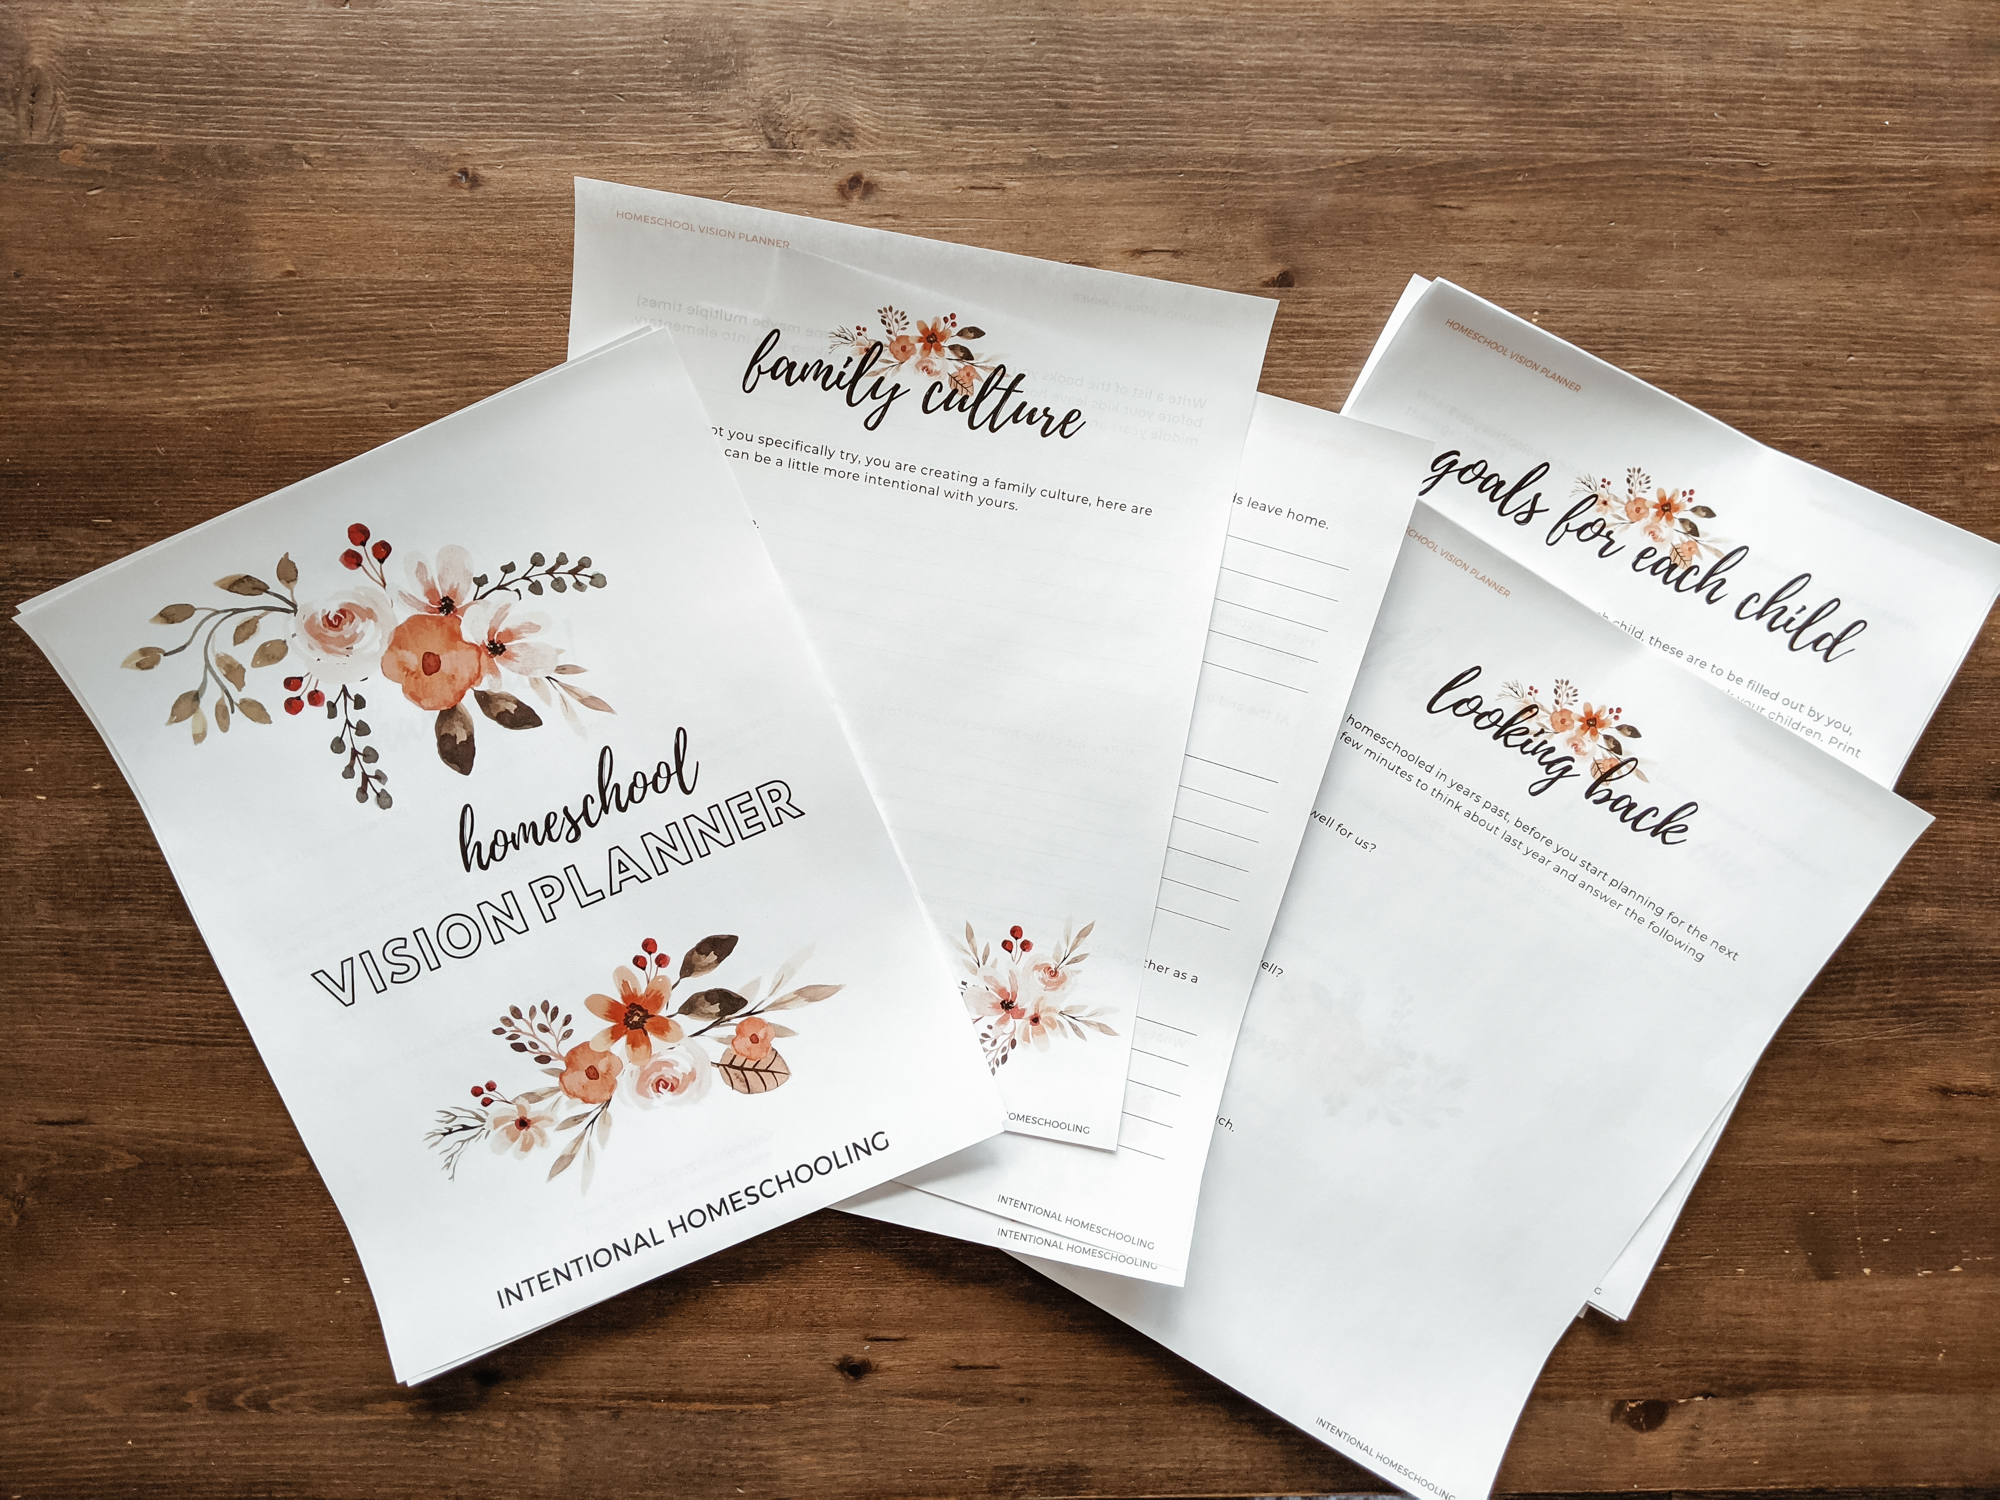 Homeschool Year in Review - Using the Intentional Homeschooling Vision Planner